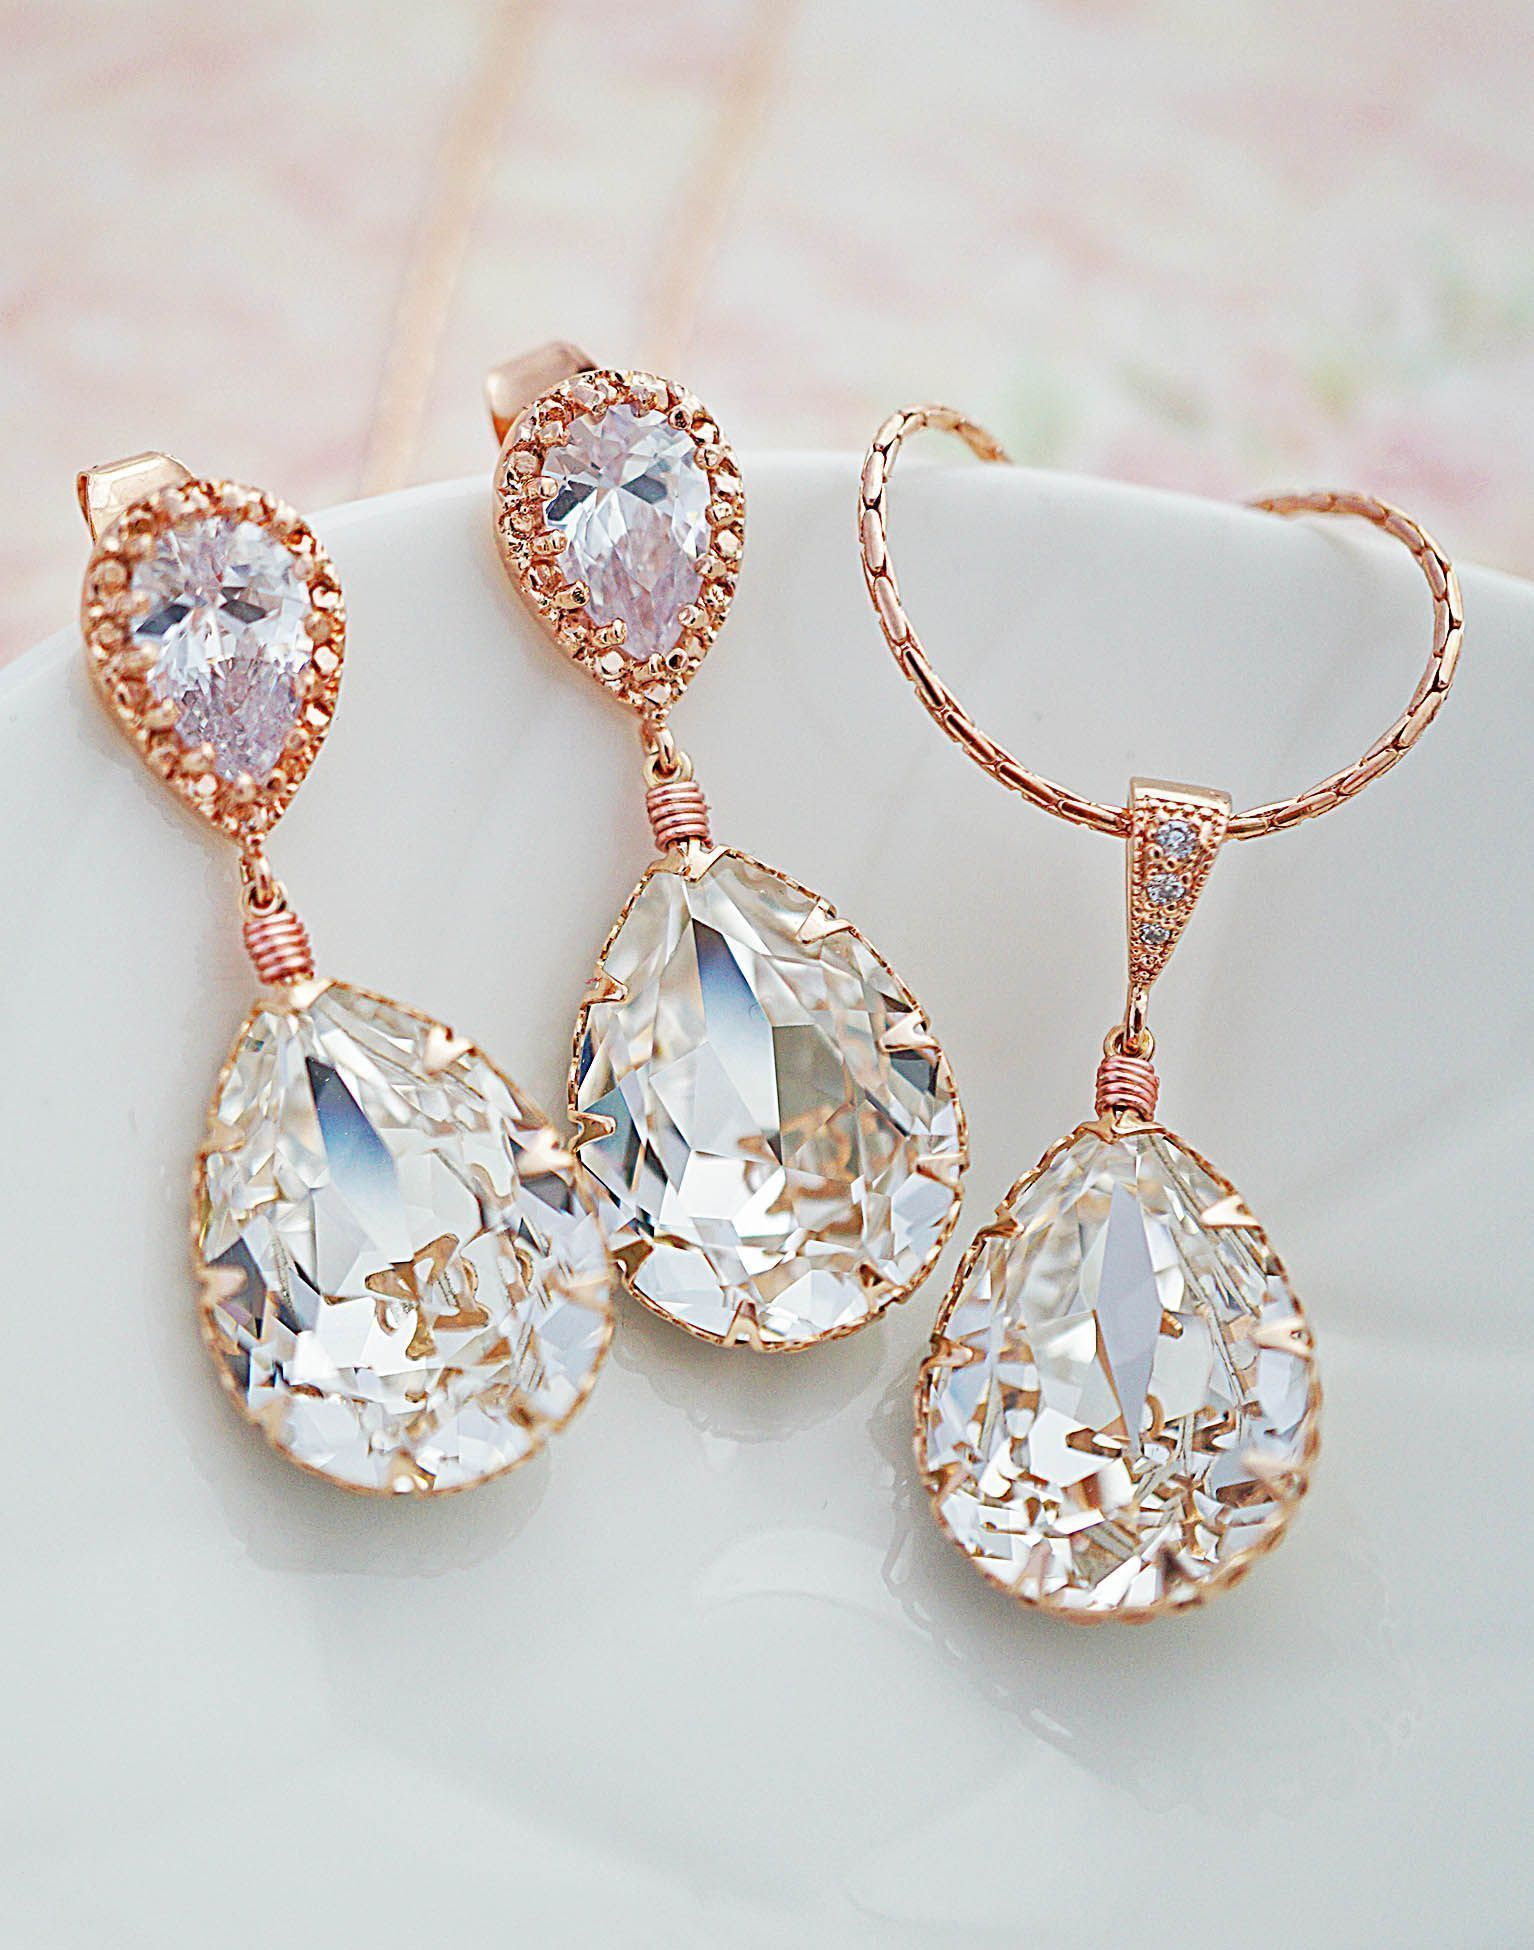 7103a127b Swarovski Crystal Rose Gold Bridal Earrings and Necklace Jewelry set from  EarringsNation Wedding Earrings Rose Gold Weddings Blush weddings Bridal  Jewelry ...